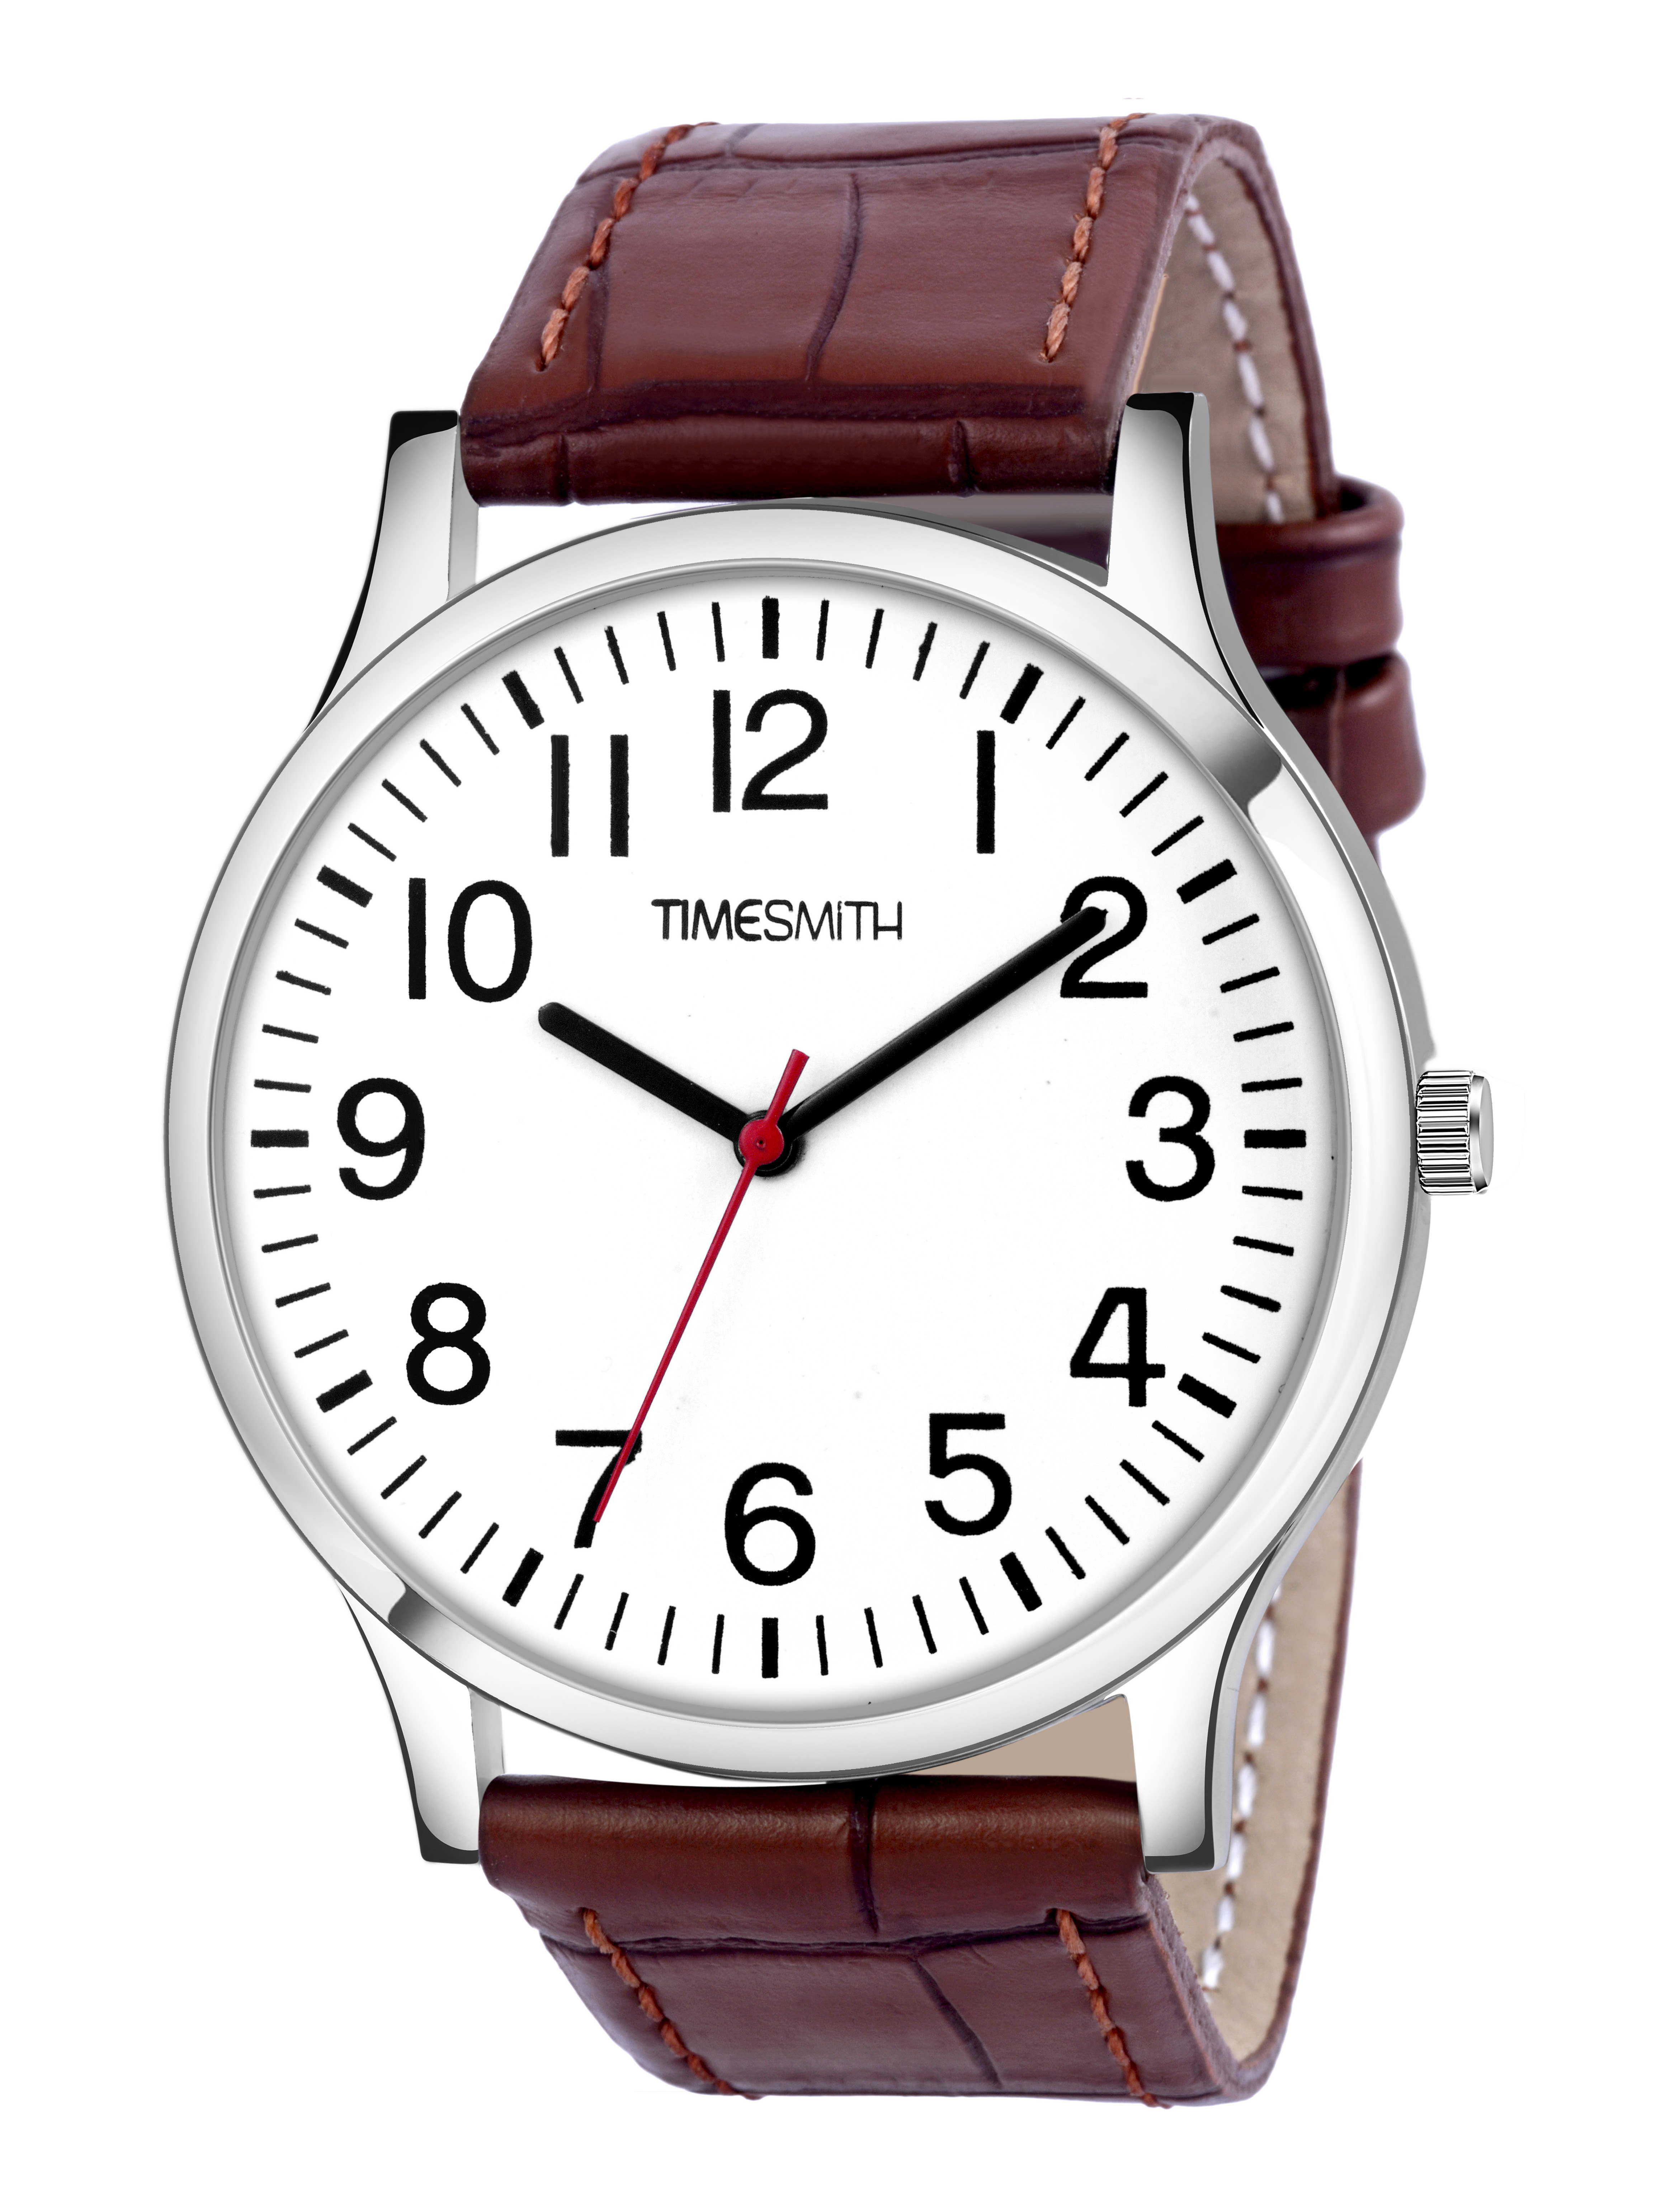 Timesmith   Timesmith Brown Leather Blue Dial Watch For Men CTC-004mtn